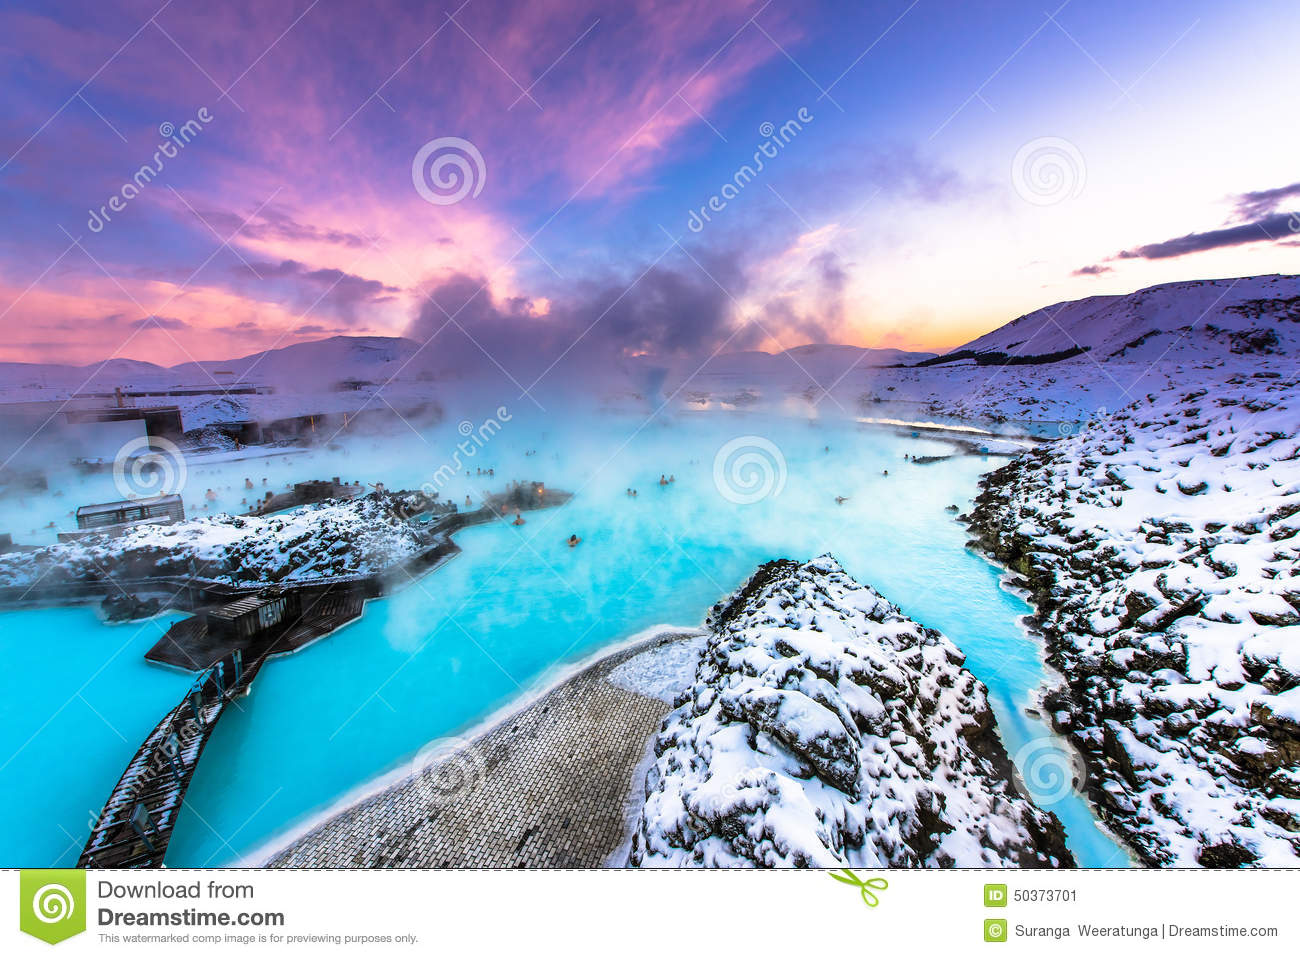 the famous blue lagoon near reykjavik iceland stock image image of background pool 50373701. Black Bedroom Furniture Sets. Home Design Ideas